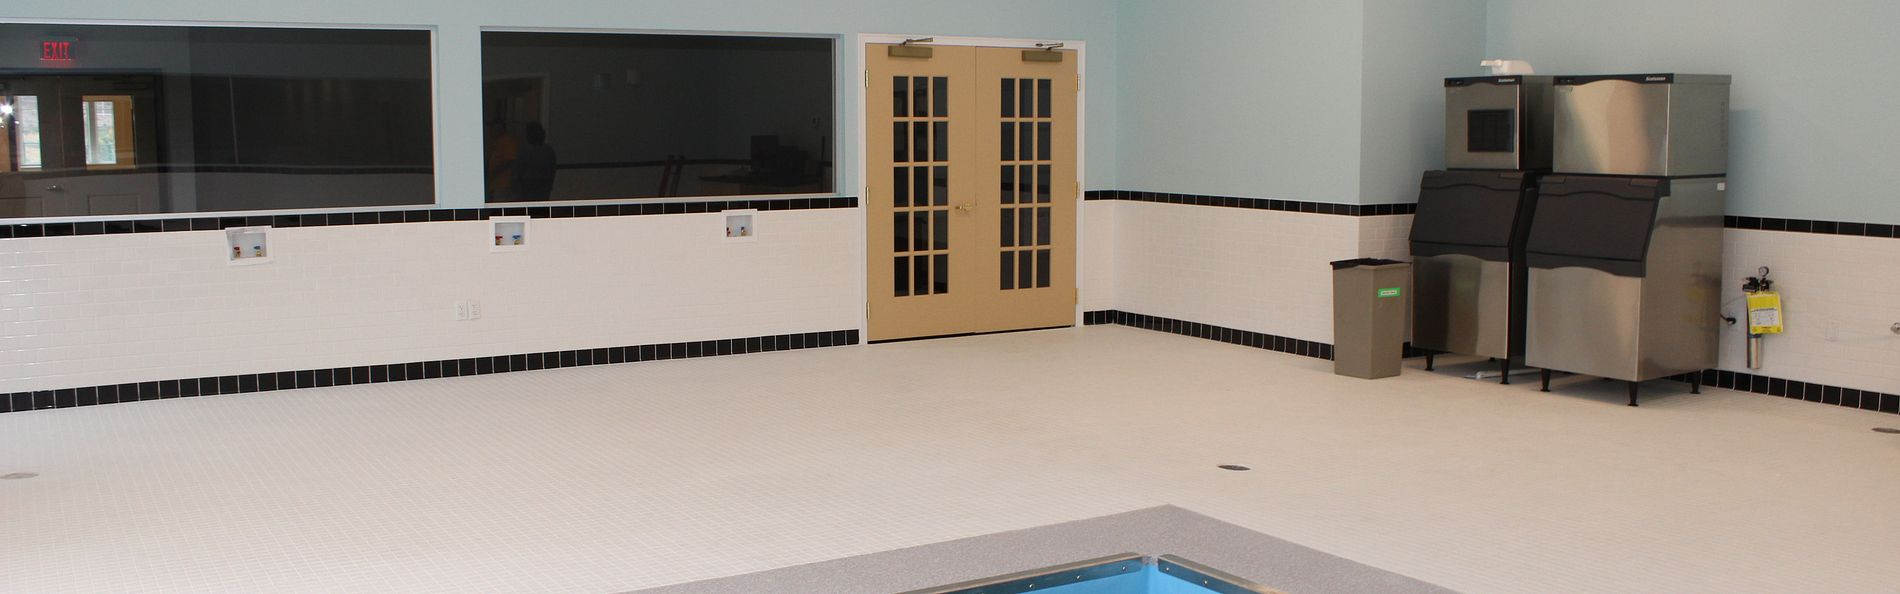 The facility includes a physical therapy suite, NFL weight and locker rooms, and a large hydro-pool